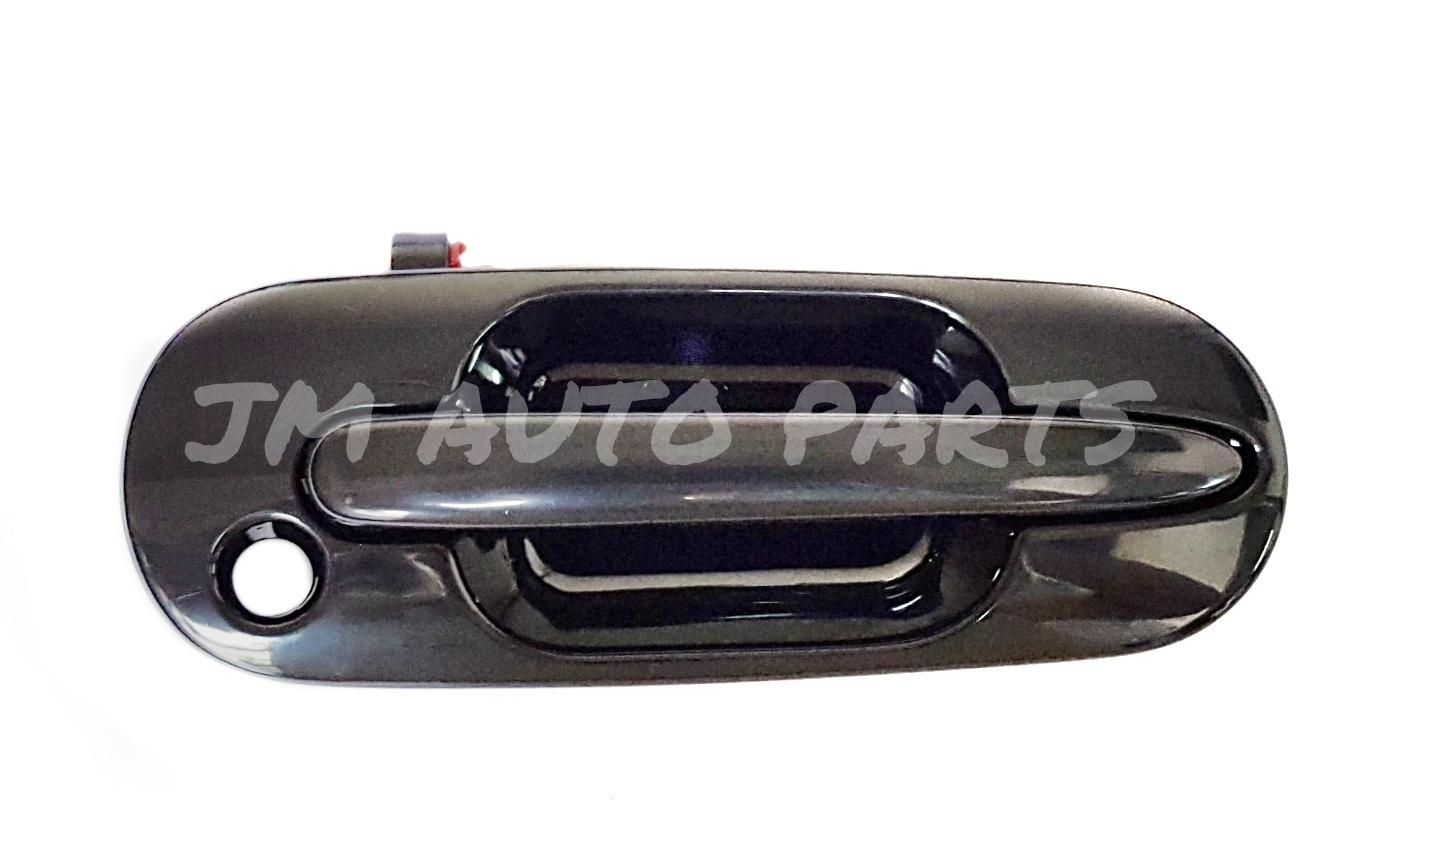 Honda Crv 1996 - 2000 Front Right (passenger Side) Outer Door Handle By Jm Auto Parts.